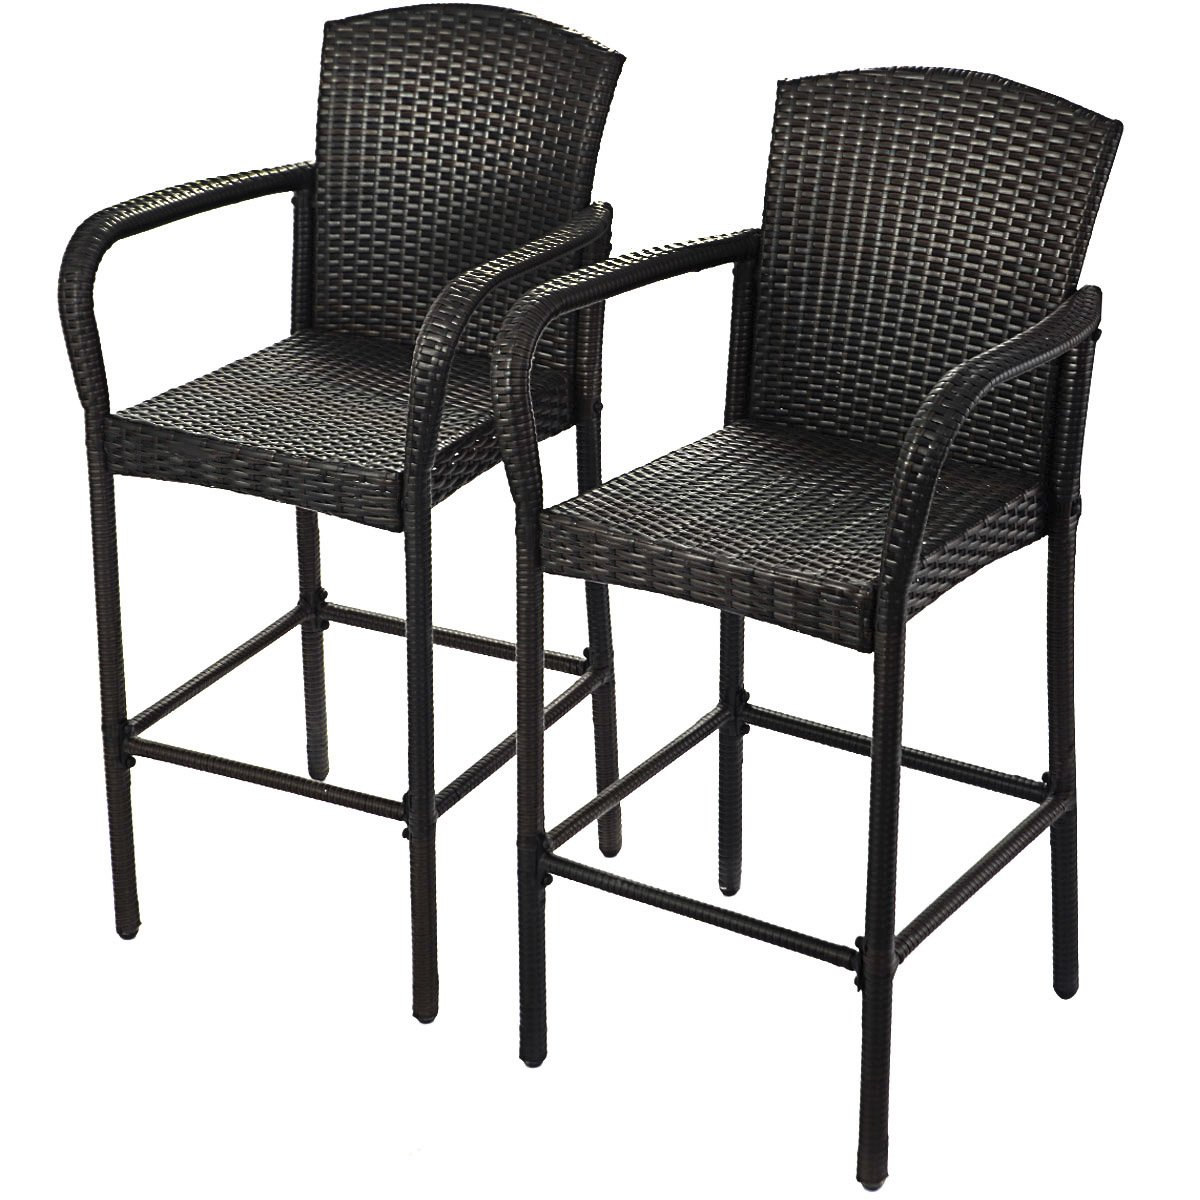 Indoor Outdoor Wicker Rattan Bar Stool with Footrest HAPPYGRILL 2pcs Patio Bar Stools